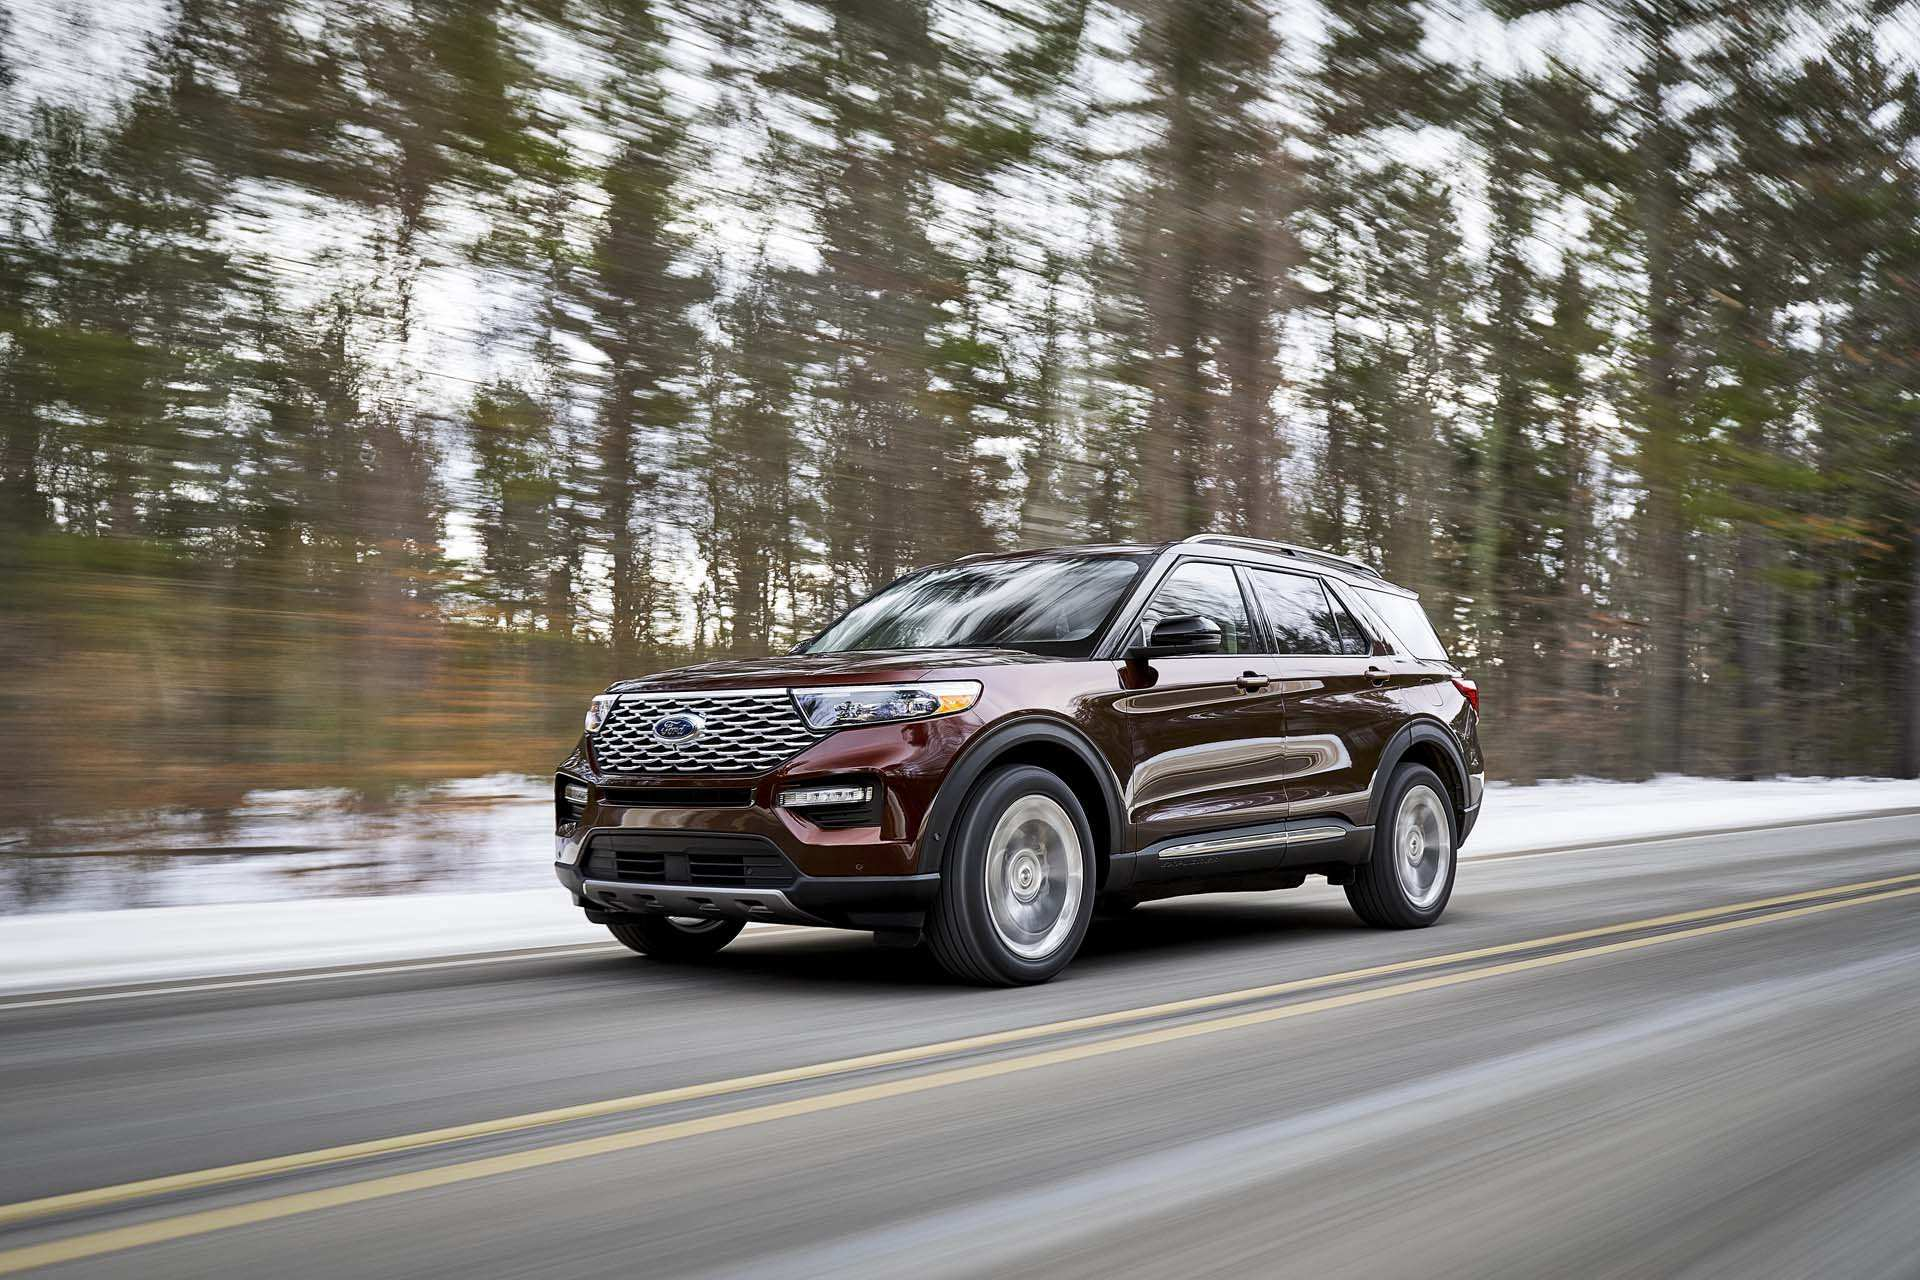 51 All New 2020 The Ford Explorer Prices